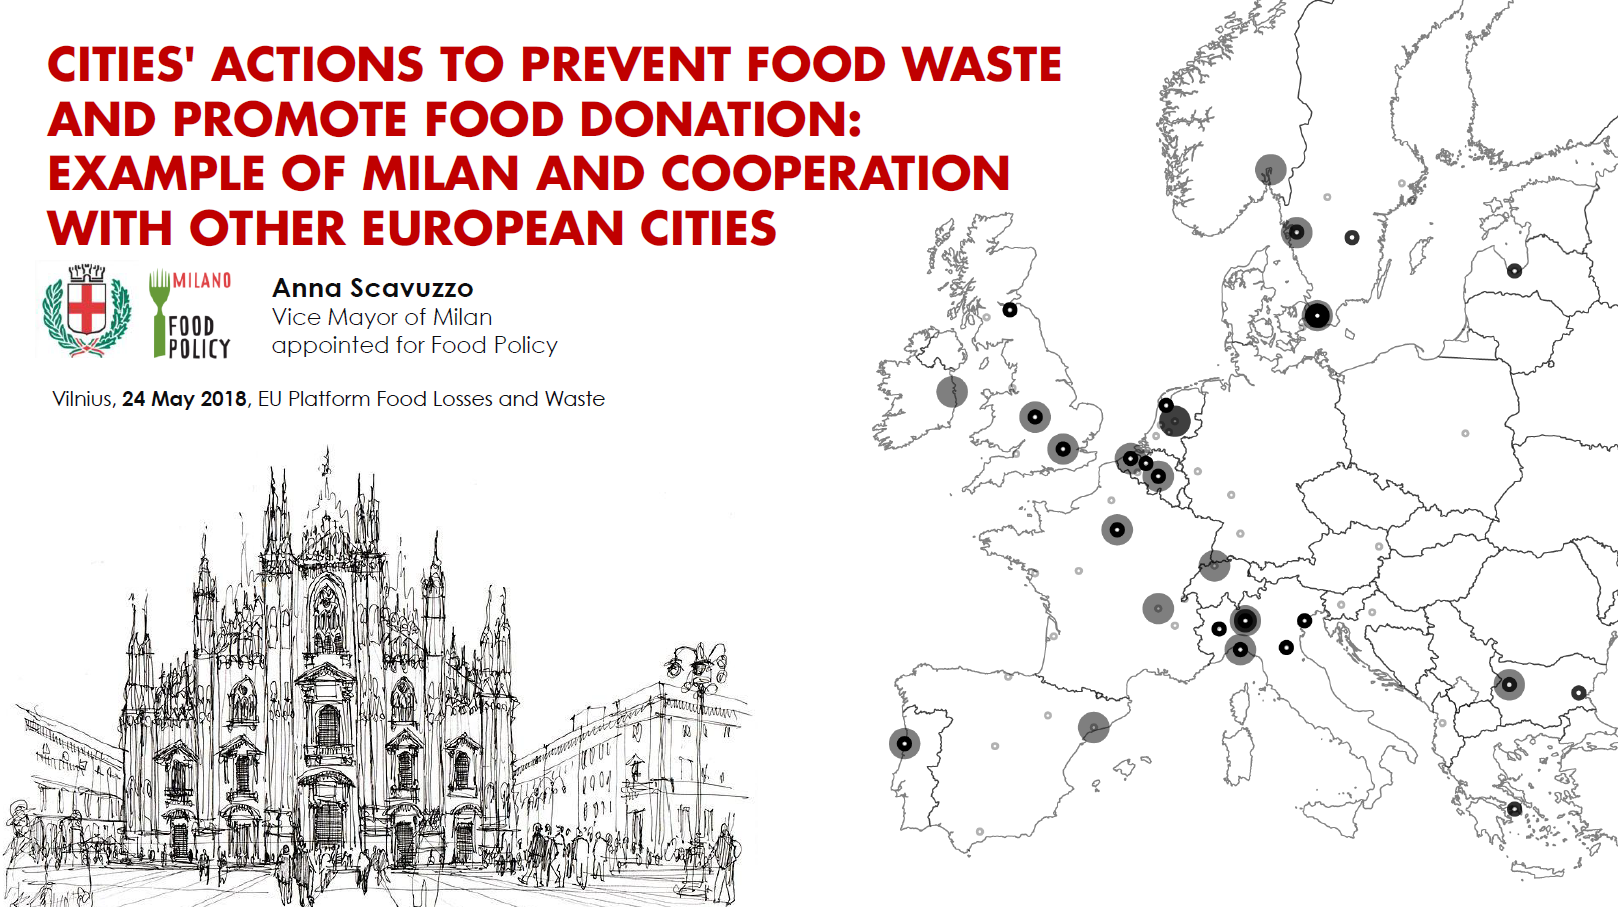 Anna Scavuzzo, Vice Mayor of Milan in charge for Food Policy